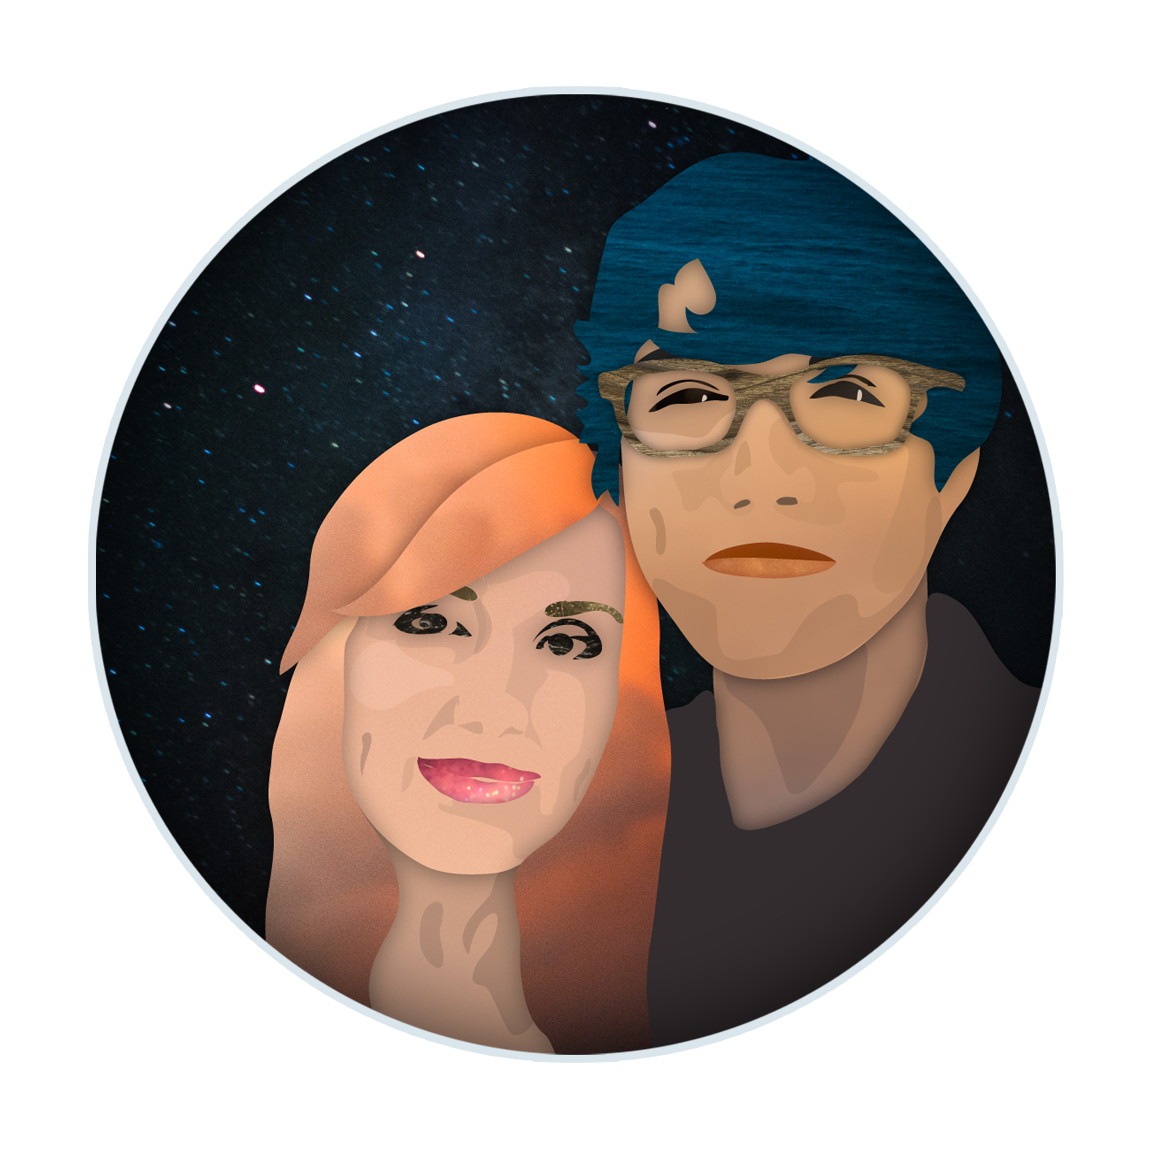 Chapman and Robin cutout portrait